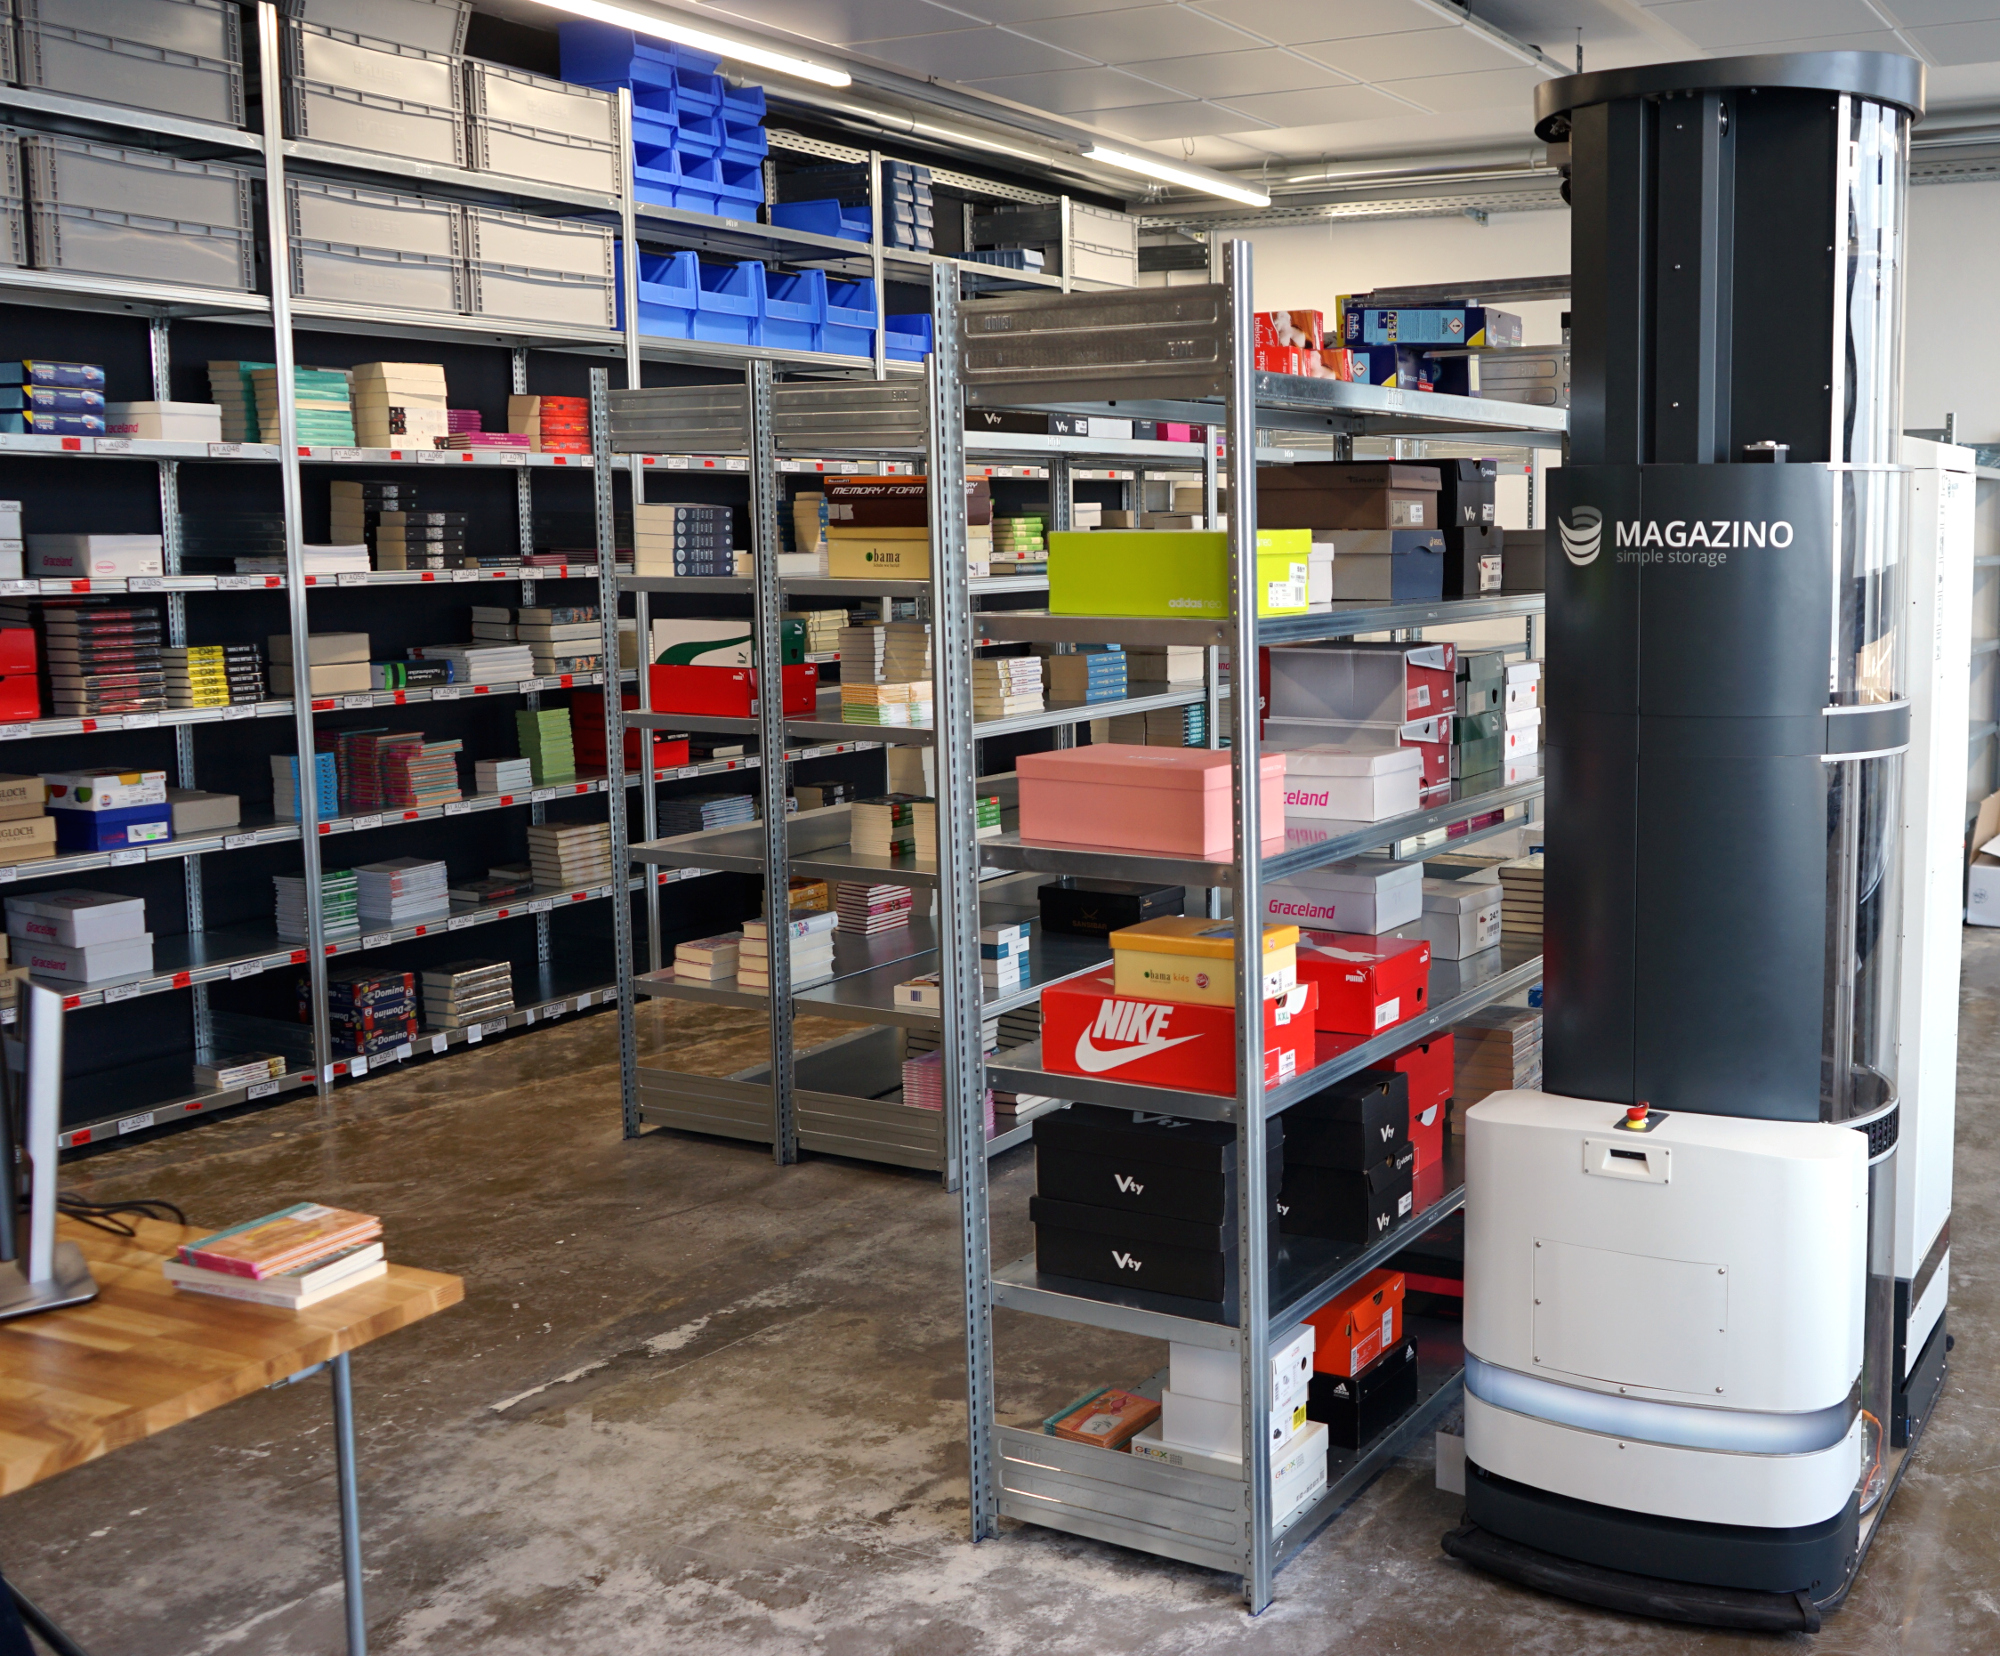 Troublesome handling of returns to the warehouse? This robot